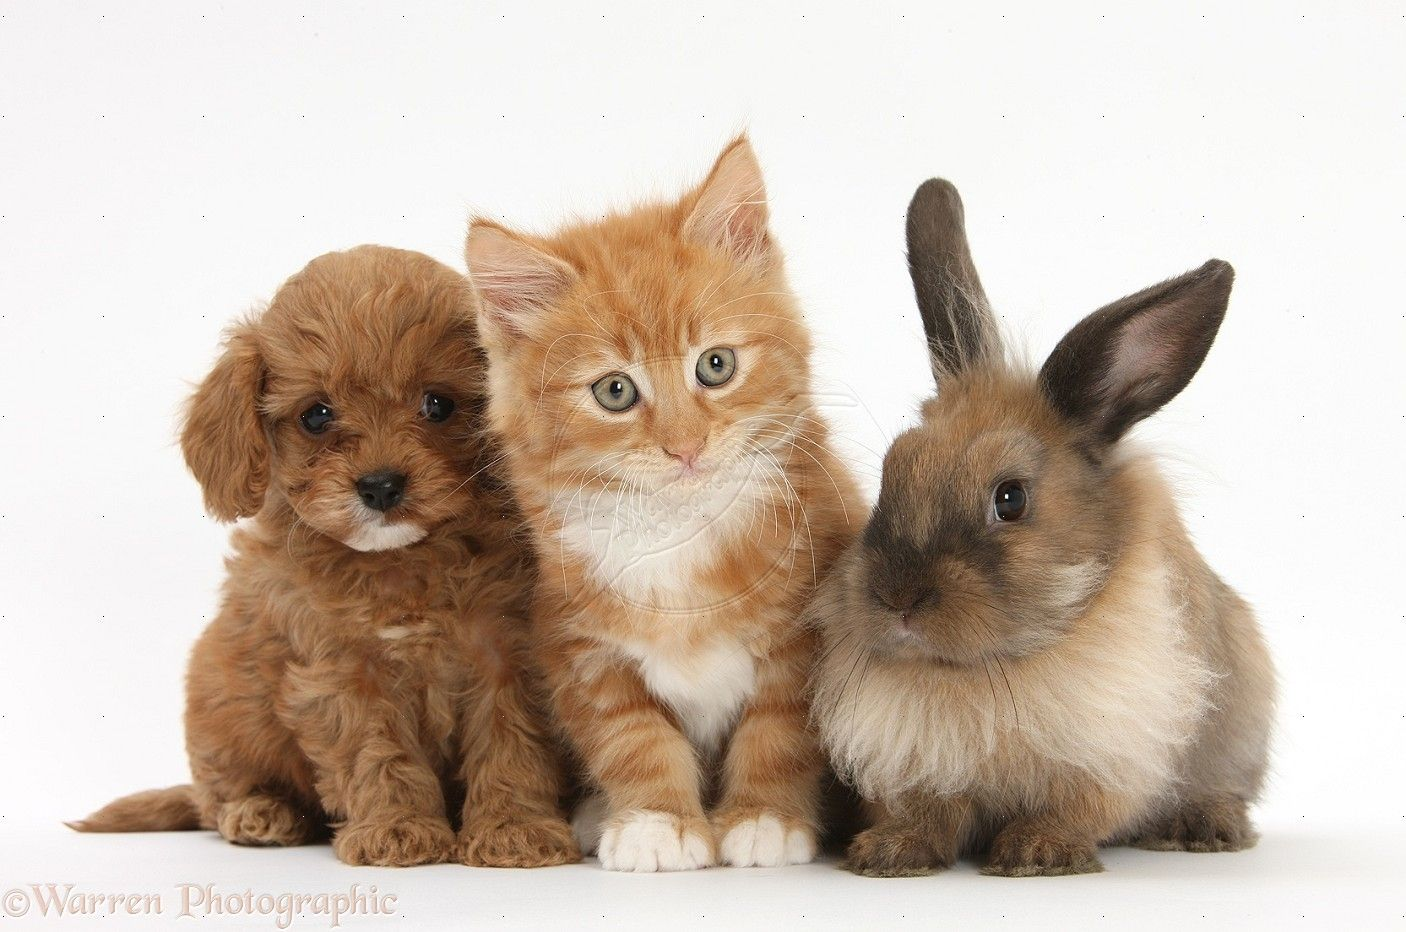 Cool Cat Supplies Cool Puppies And Kittens And Bunnies Together And Also